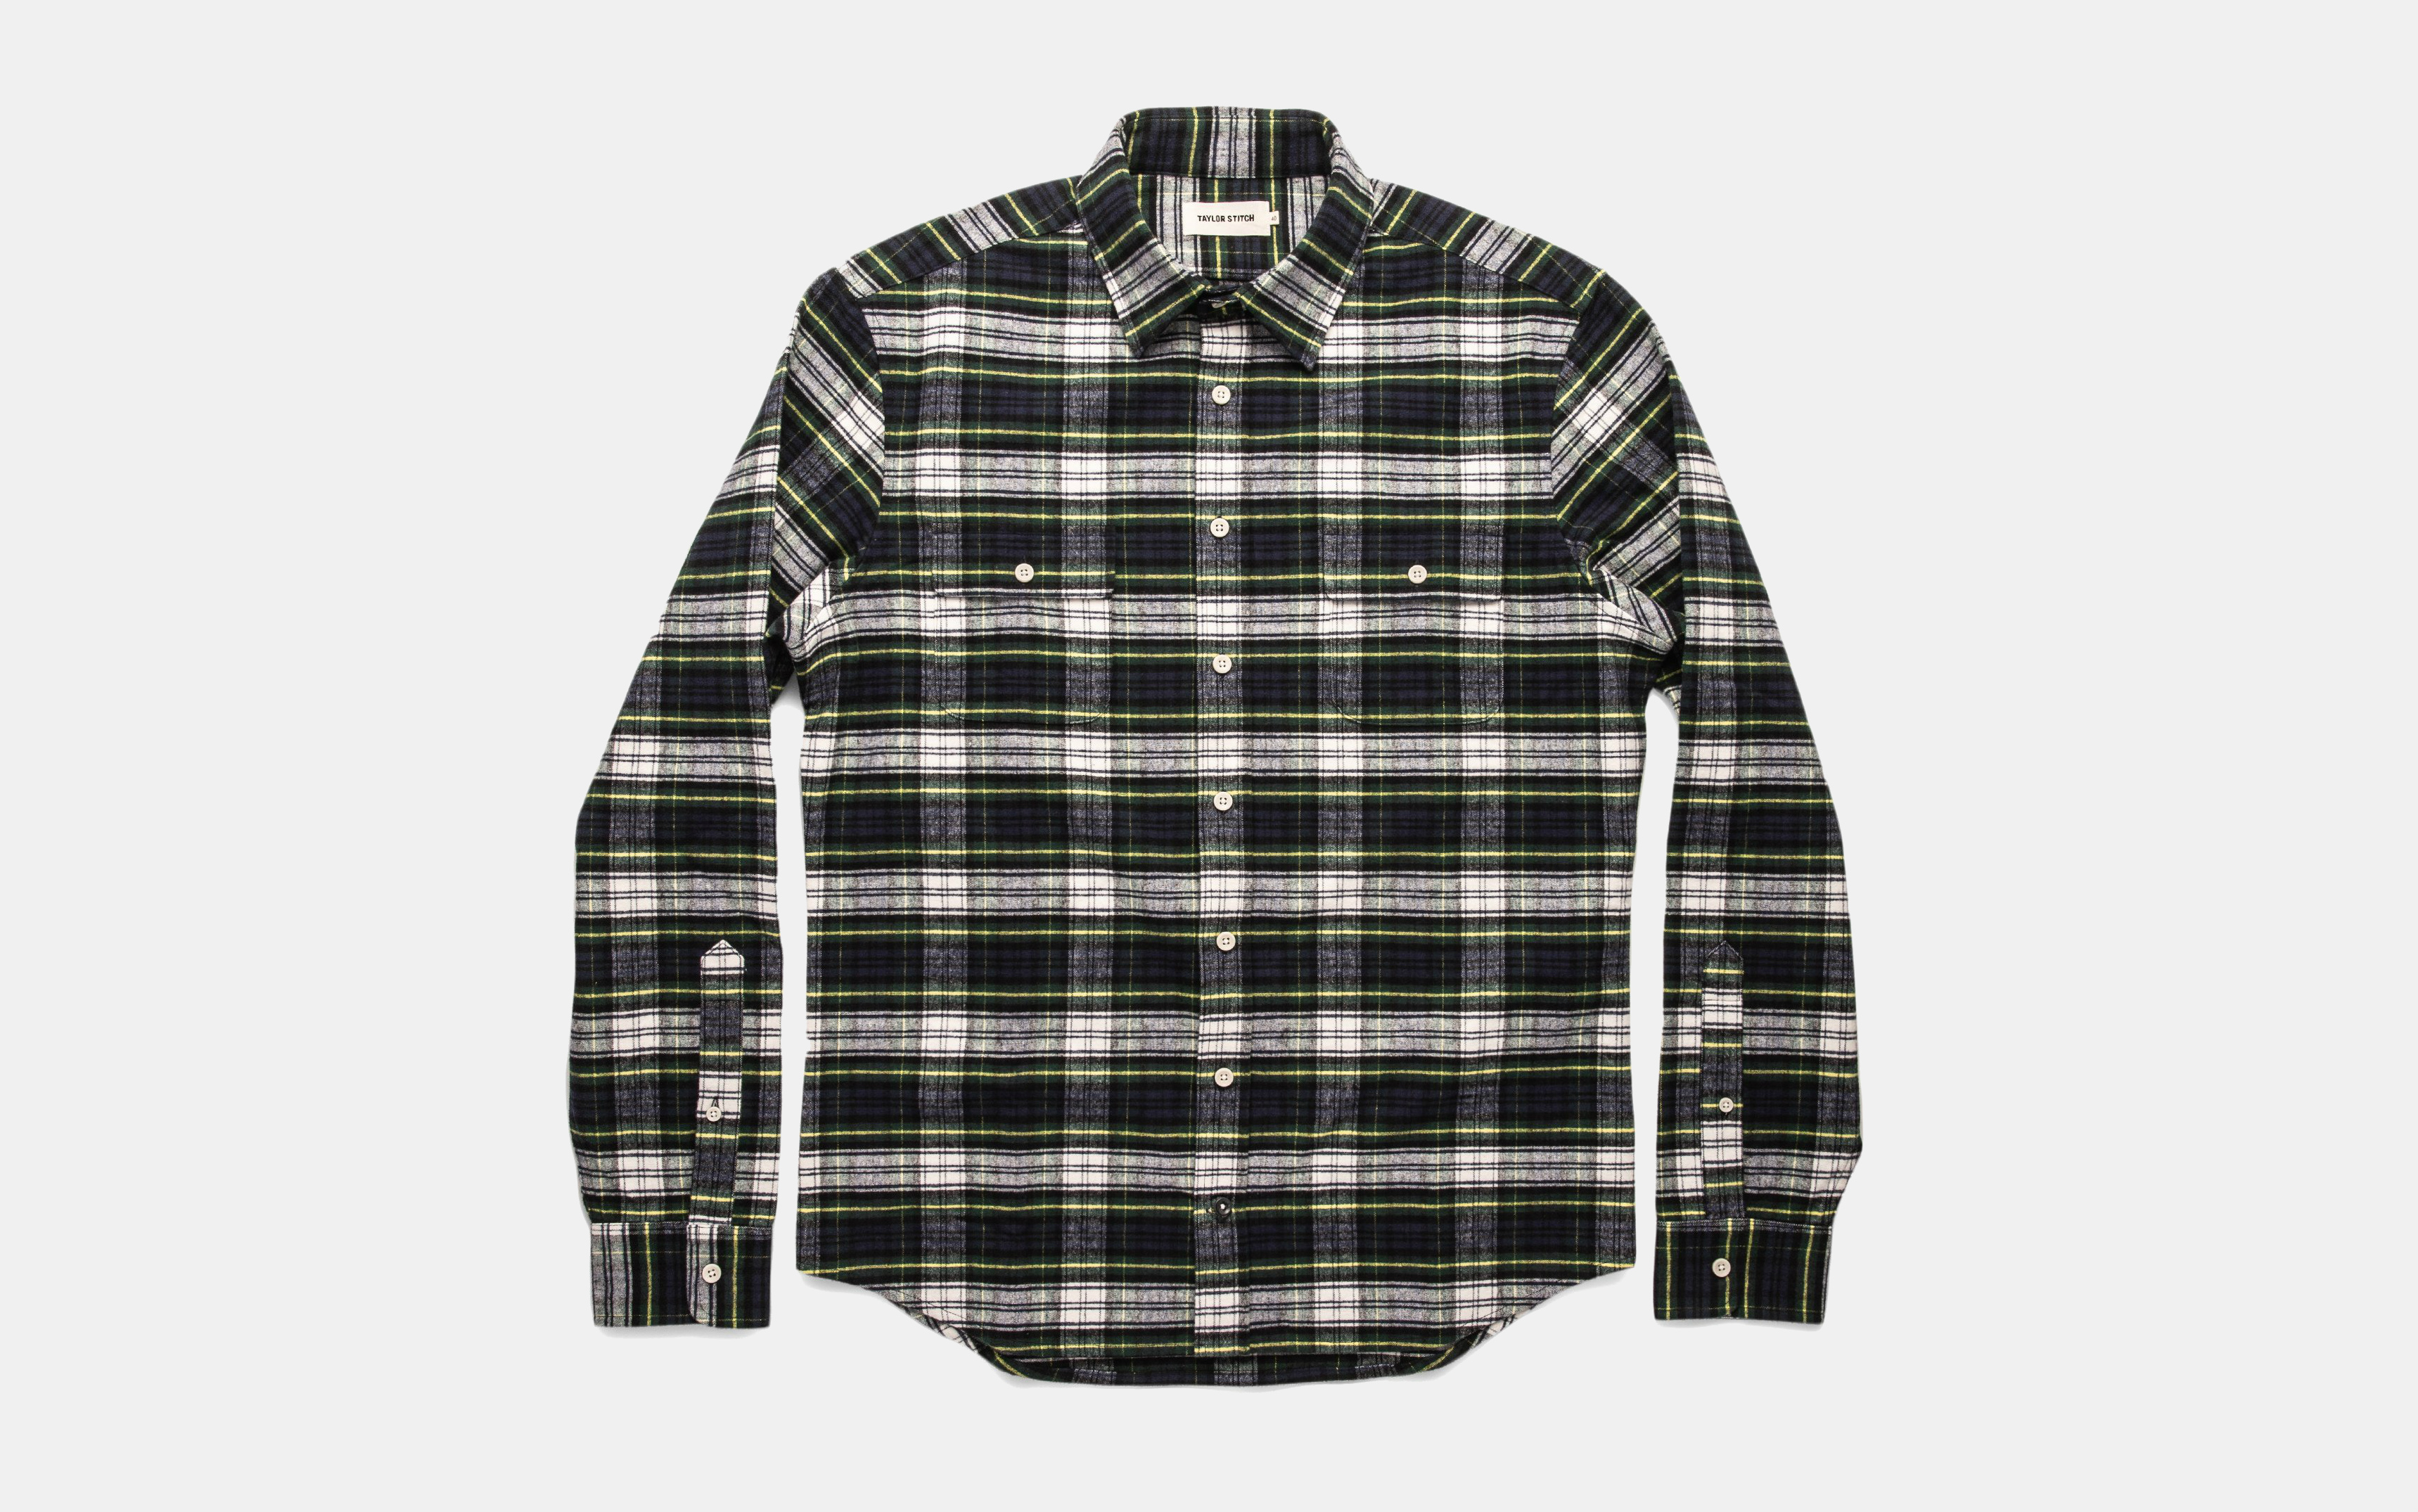 Taylor Stitch Yosemite Shirt in Blue Tartan